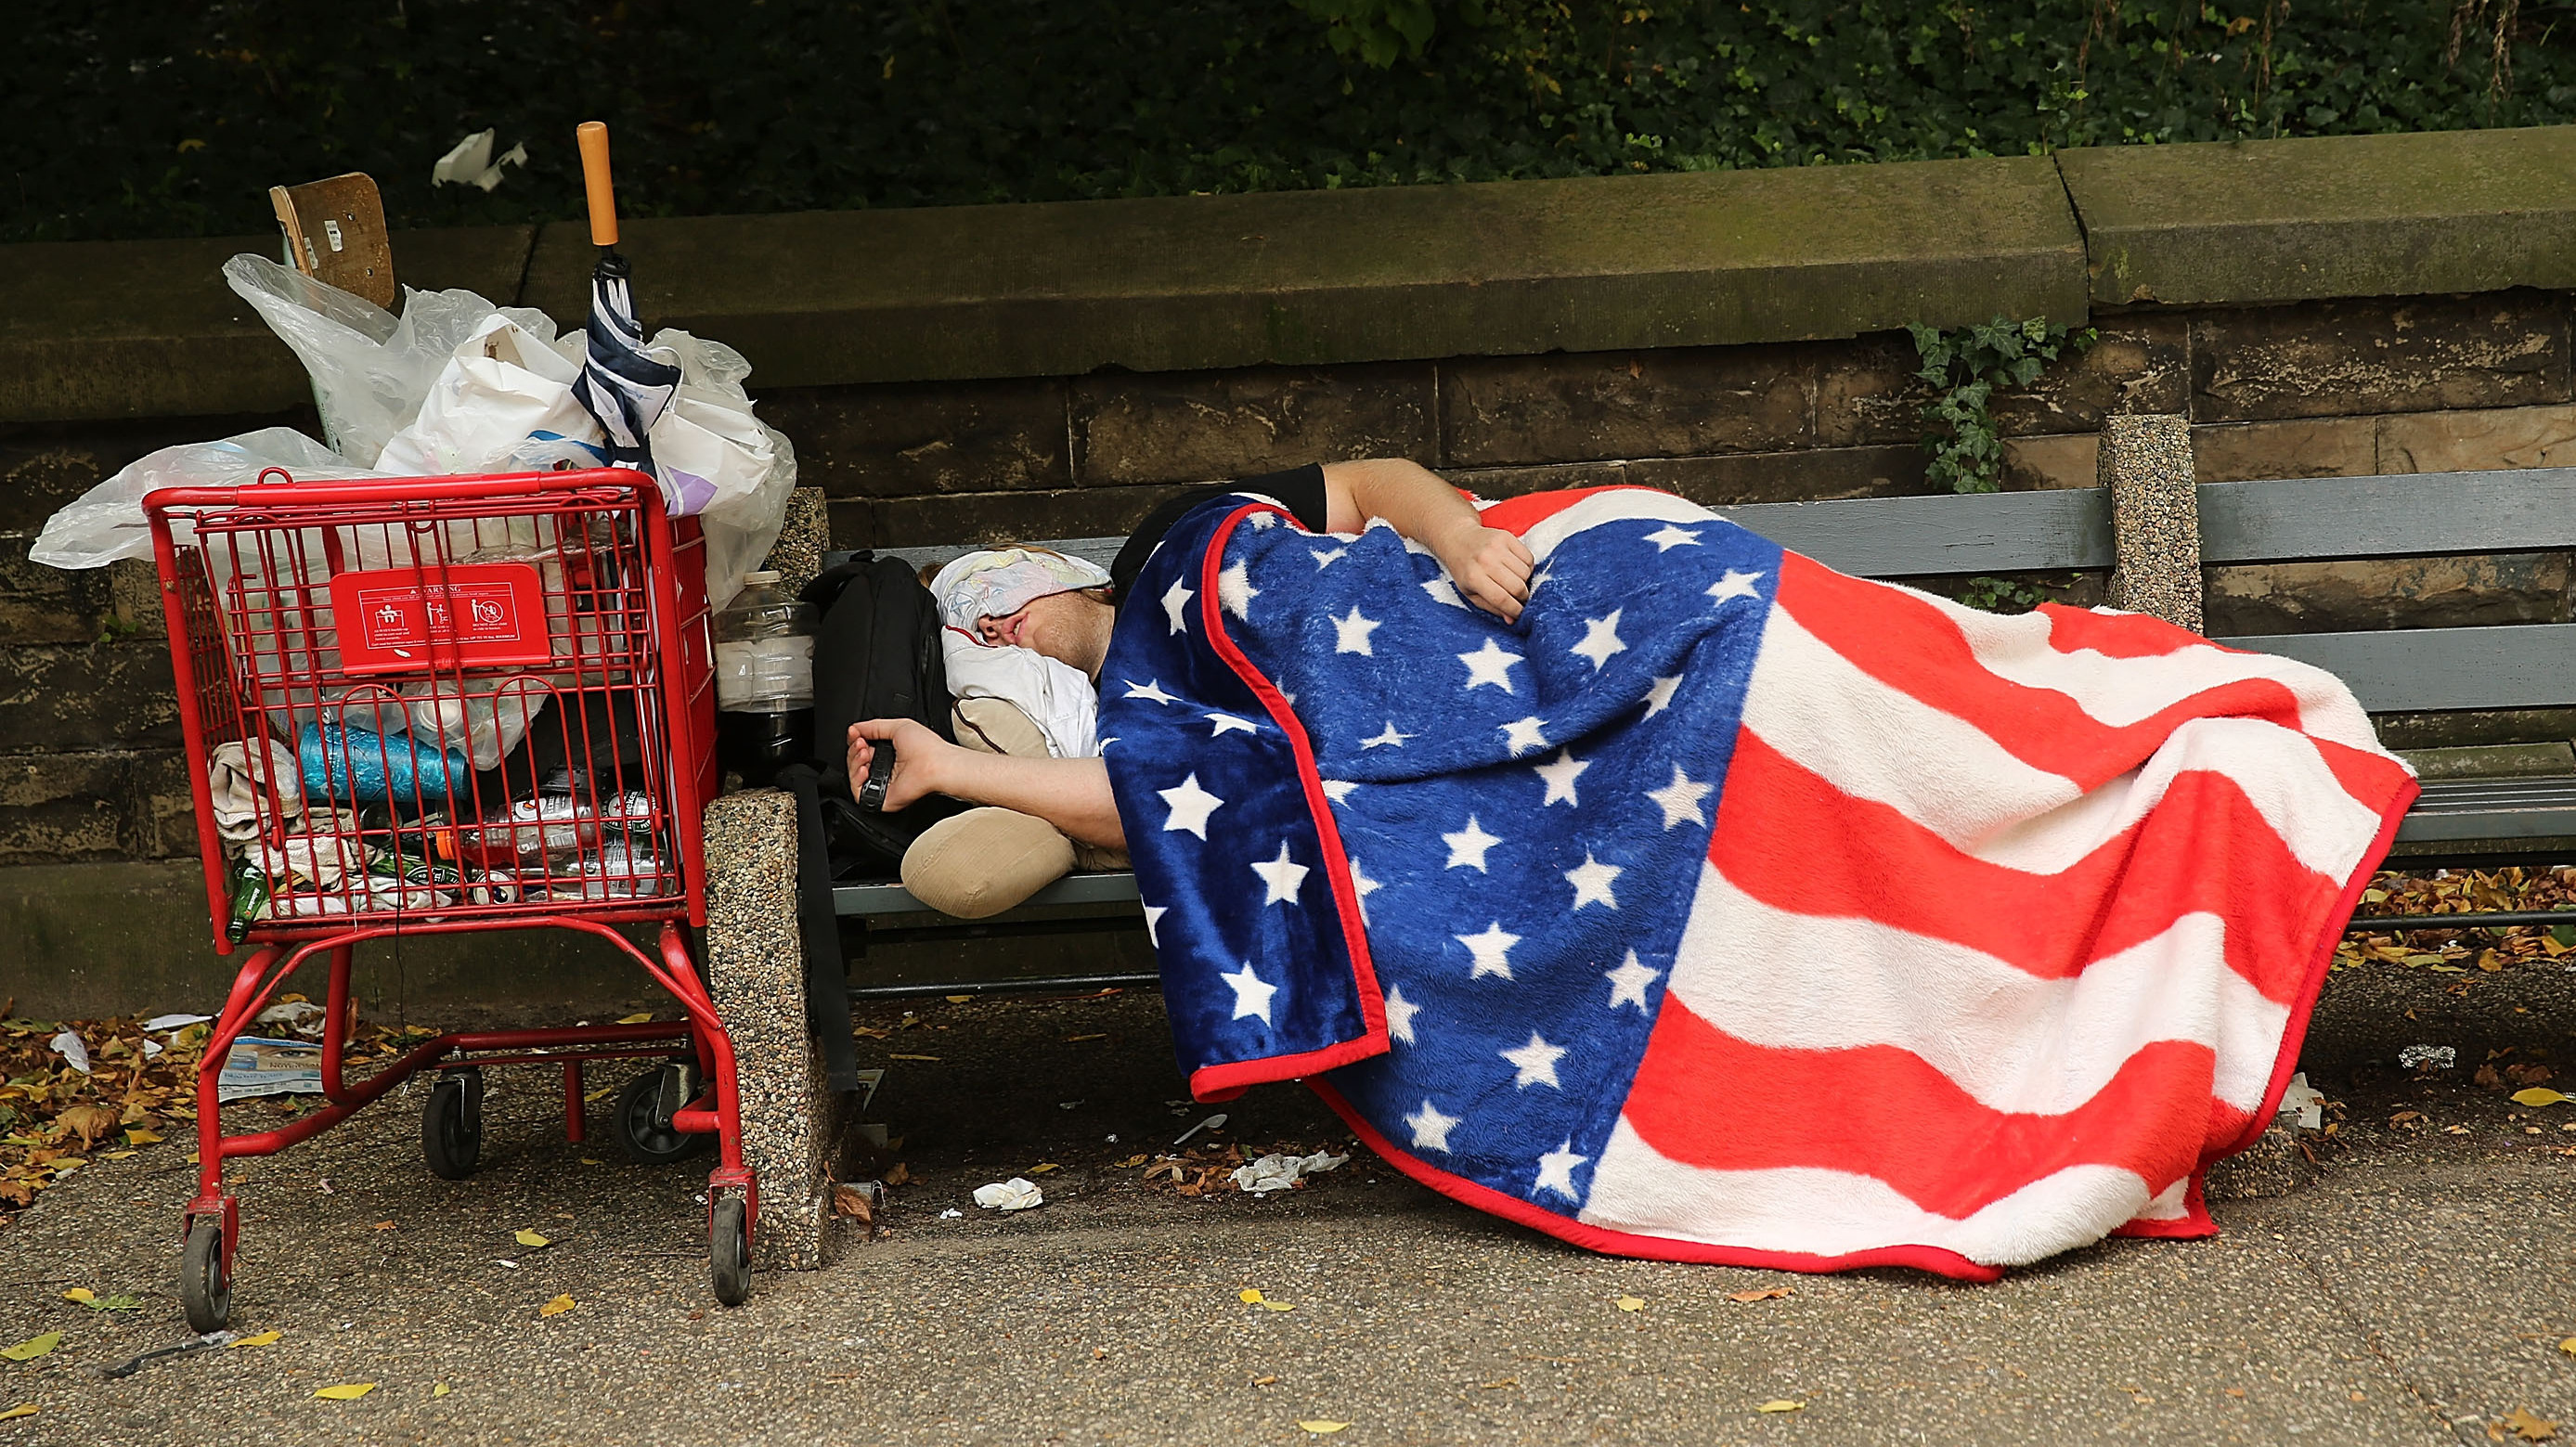 homelessness in america With the wealth divide only getting wider in america homelessness is going to go from bad to worse.